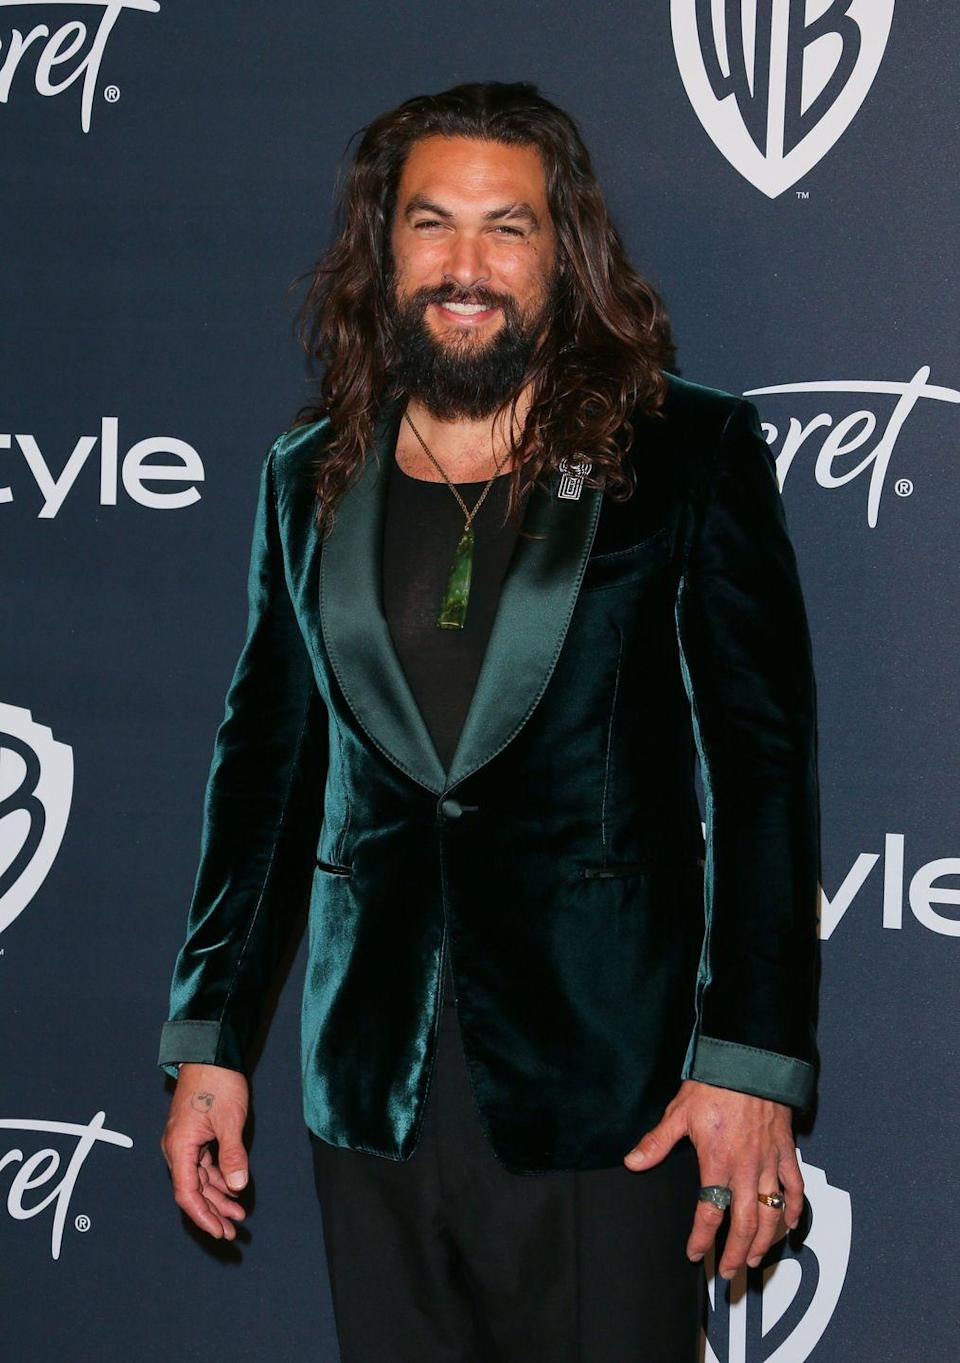 """<p>Now: Momoa has taken the acting world by storm with roles as Aquaman and Khal Drogo in Game of Thrones. With his buff physique and intimidating height, Momoa is known for starring as <a href=""""https://www.imdb.com/name/nm0597388/?ref_=nmawd_awd_nm"""" rel=""""nofollow noopener"""" target=""""_blank"""" data-ylk=""""slk:warriors and tough figures in films"""" class=""""link rapid-noclick-resp"""">warriors and tough figures in films</a>.</p>"""